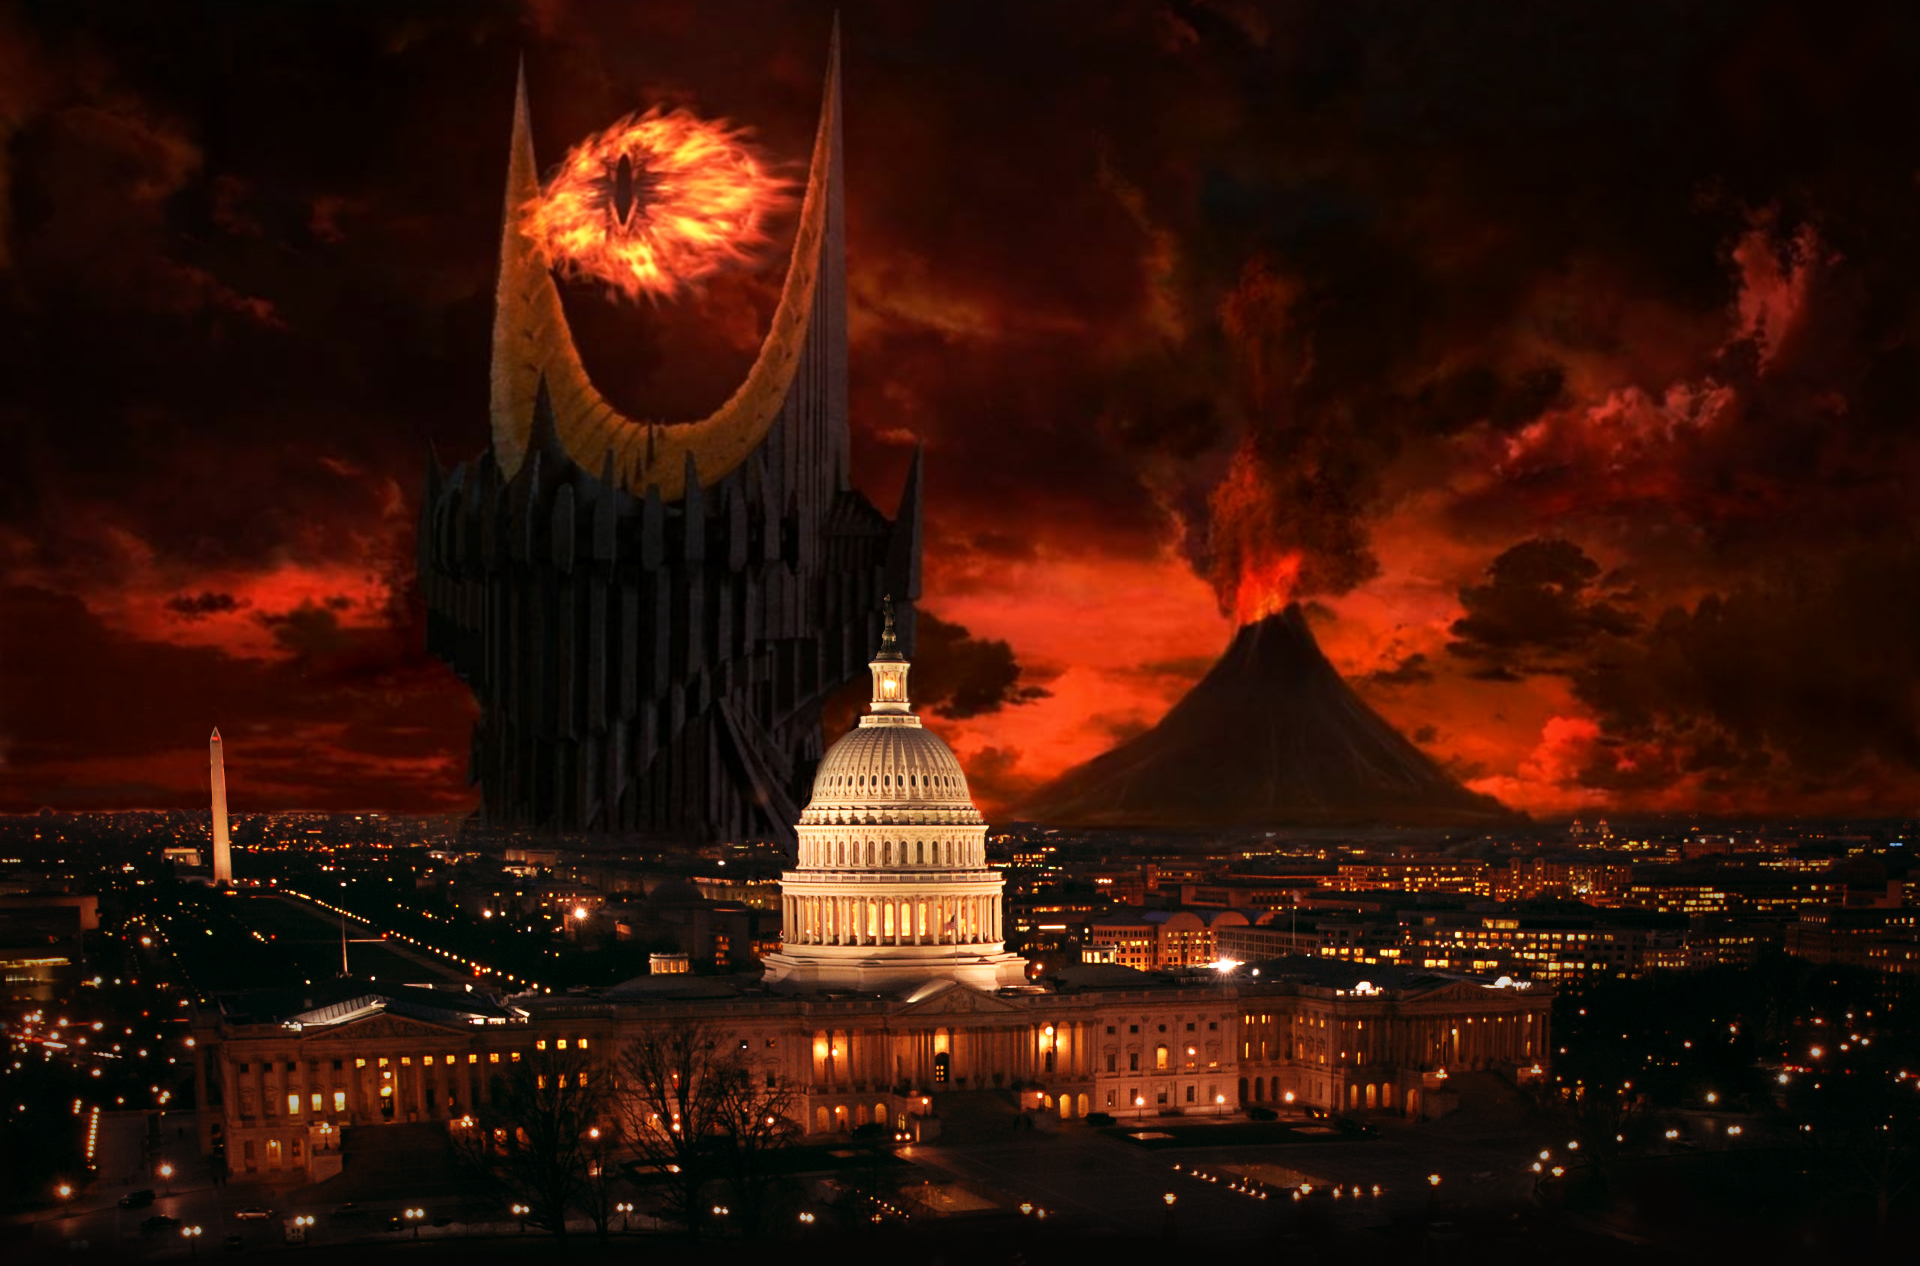 dc-mordor | Political Film Blog